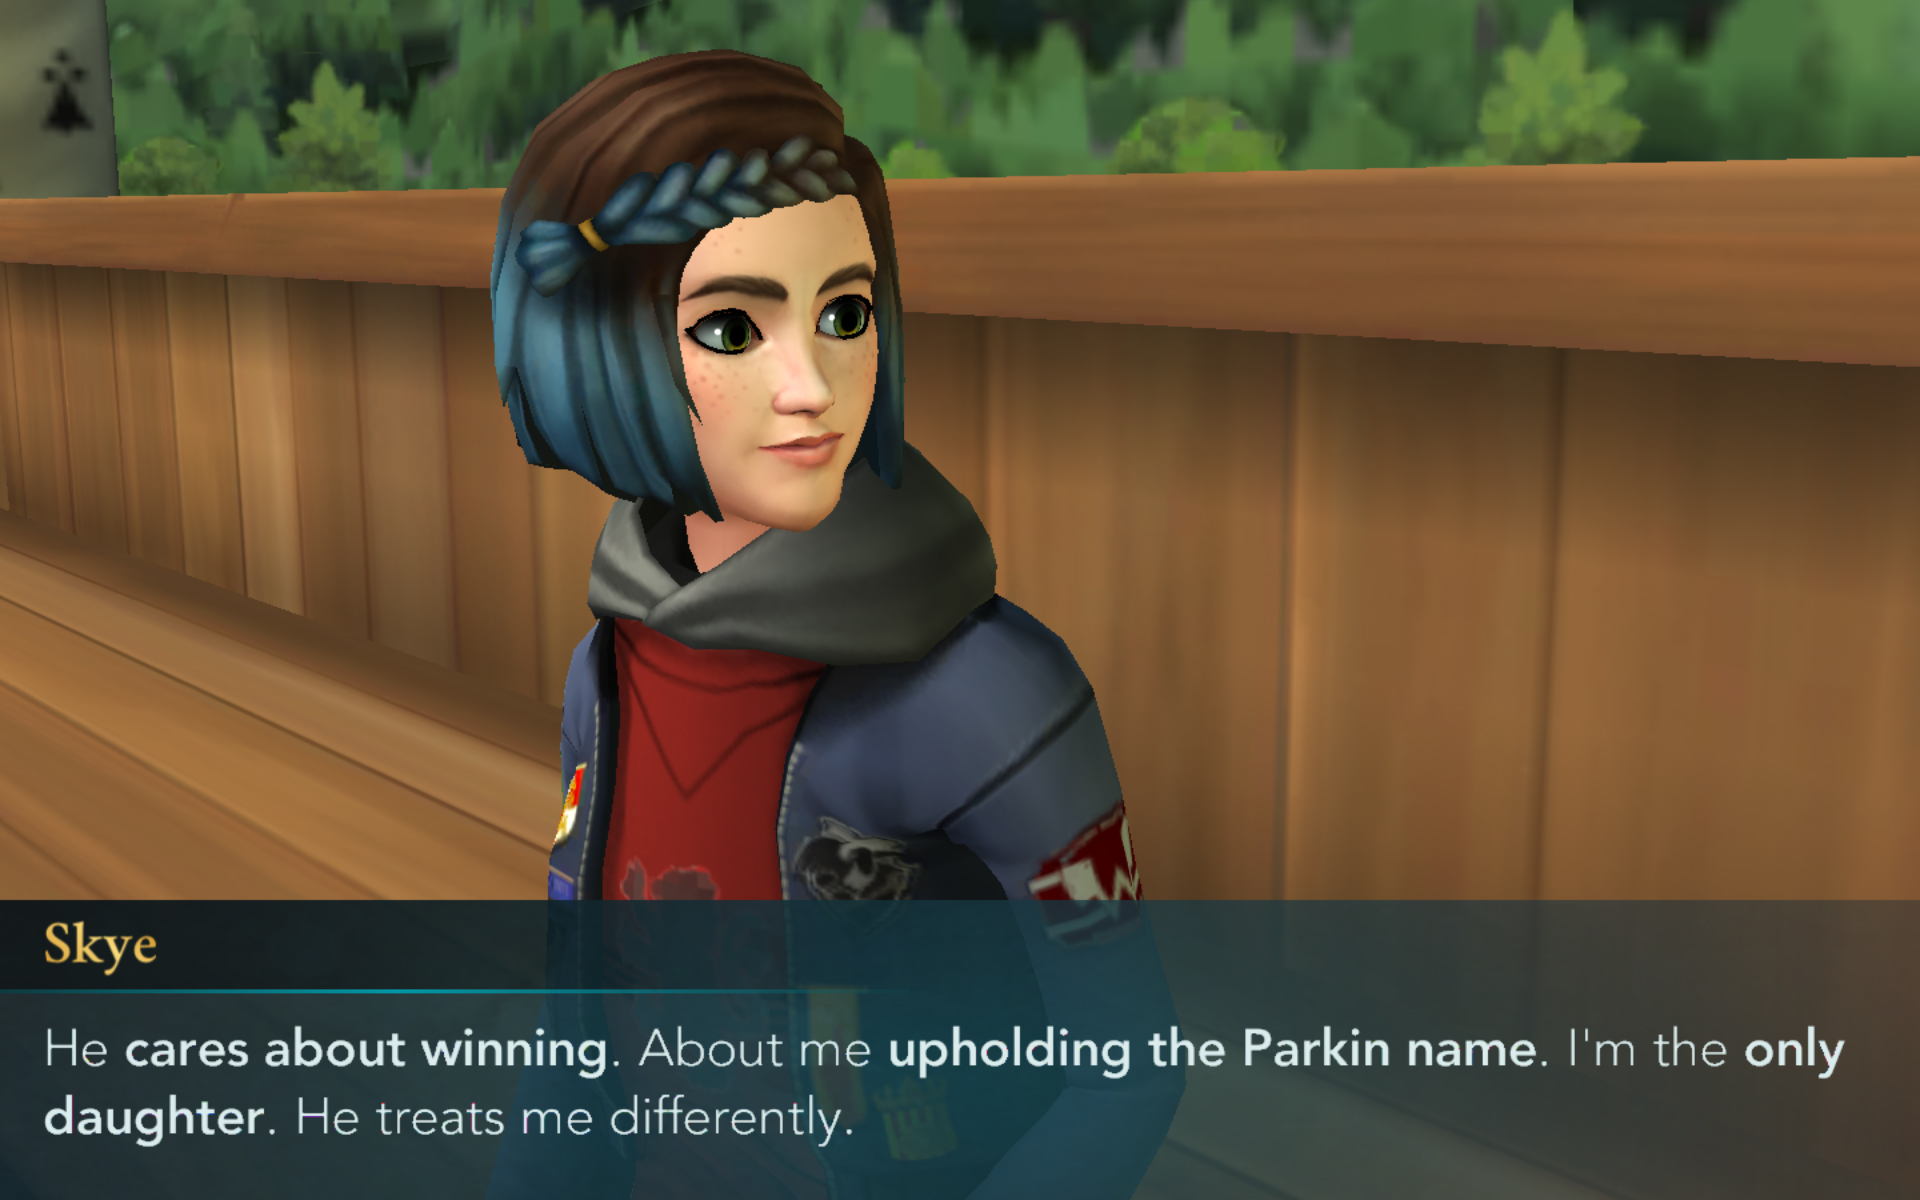 Skye Parkin is desperate to prove to her father that she's as capable of upholding the Parkin name as any boy.